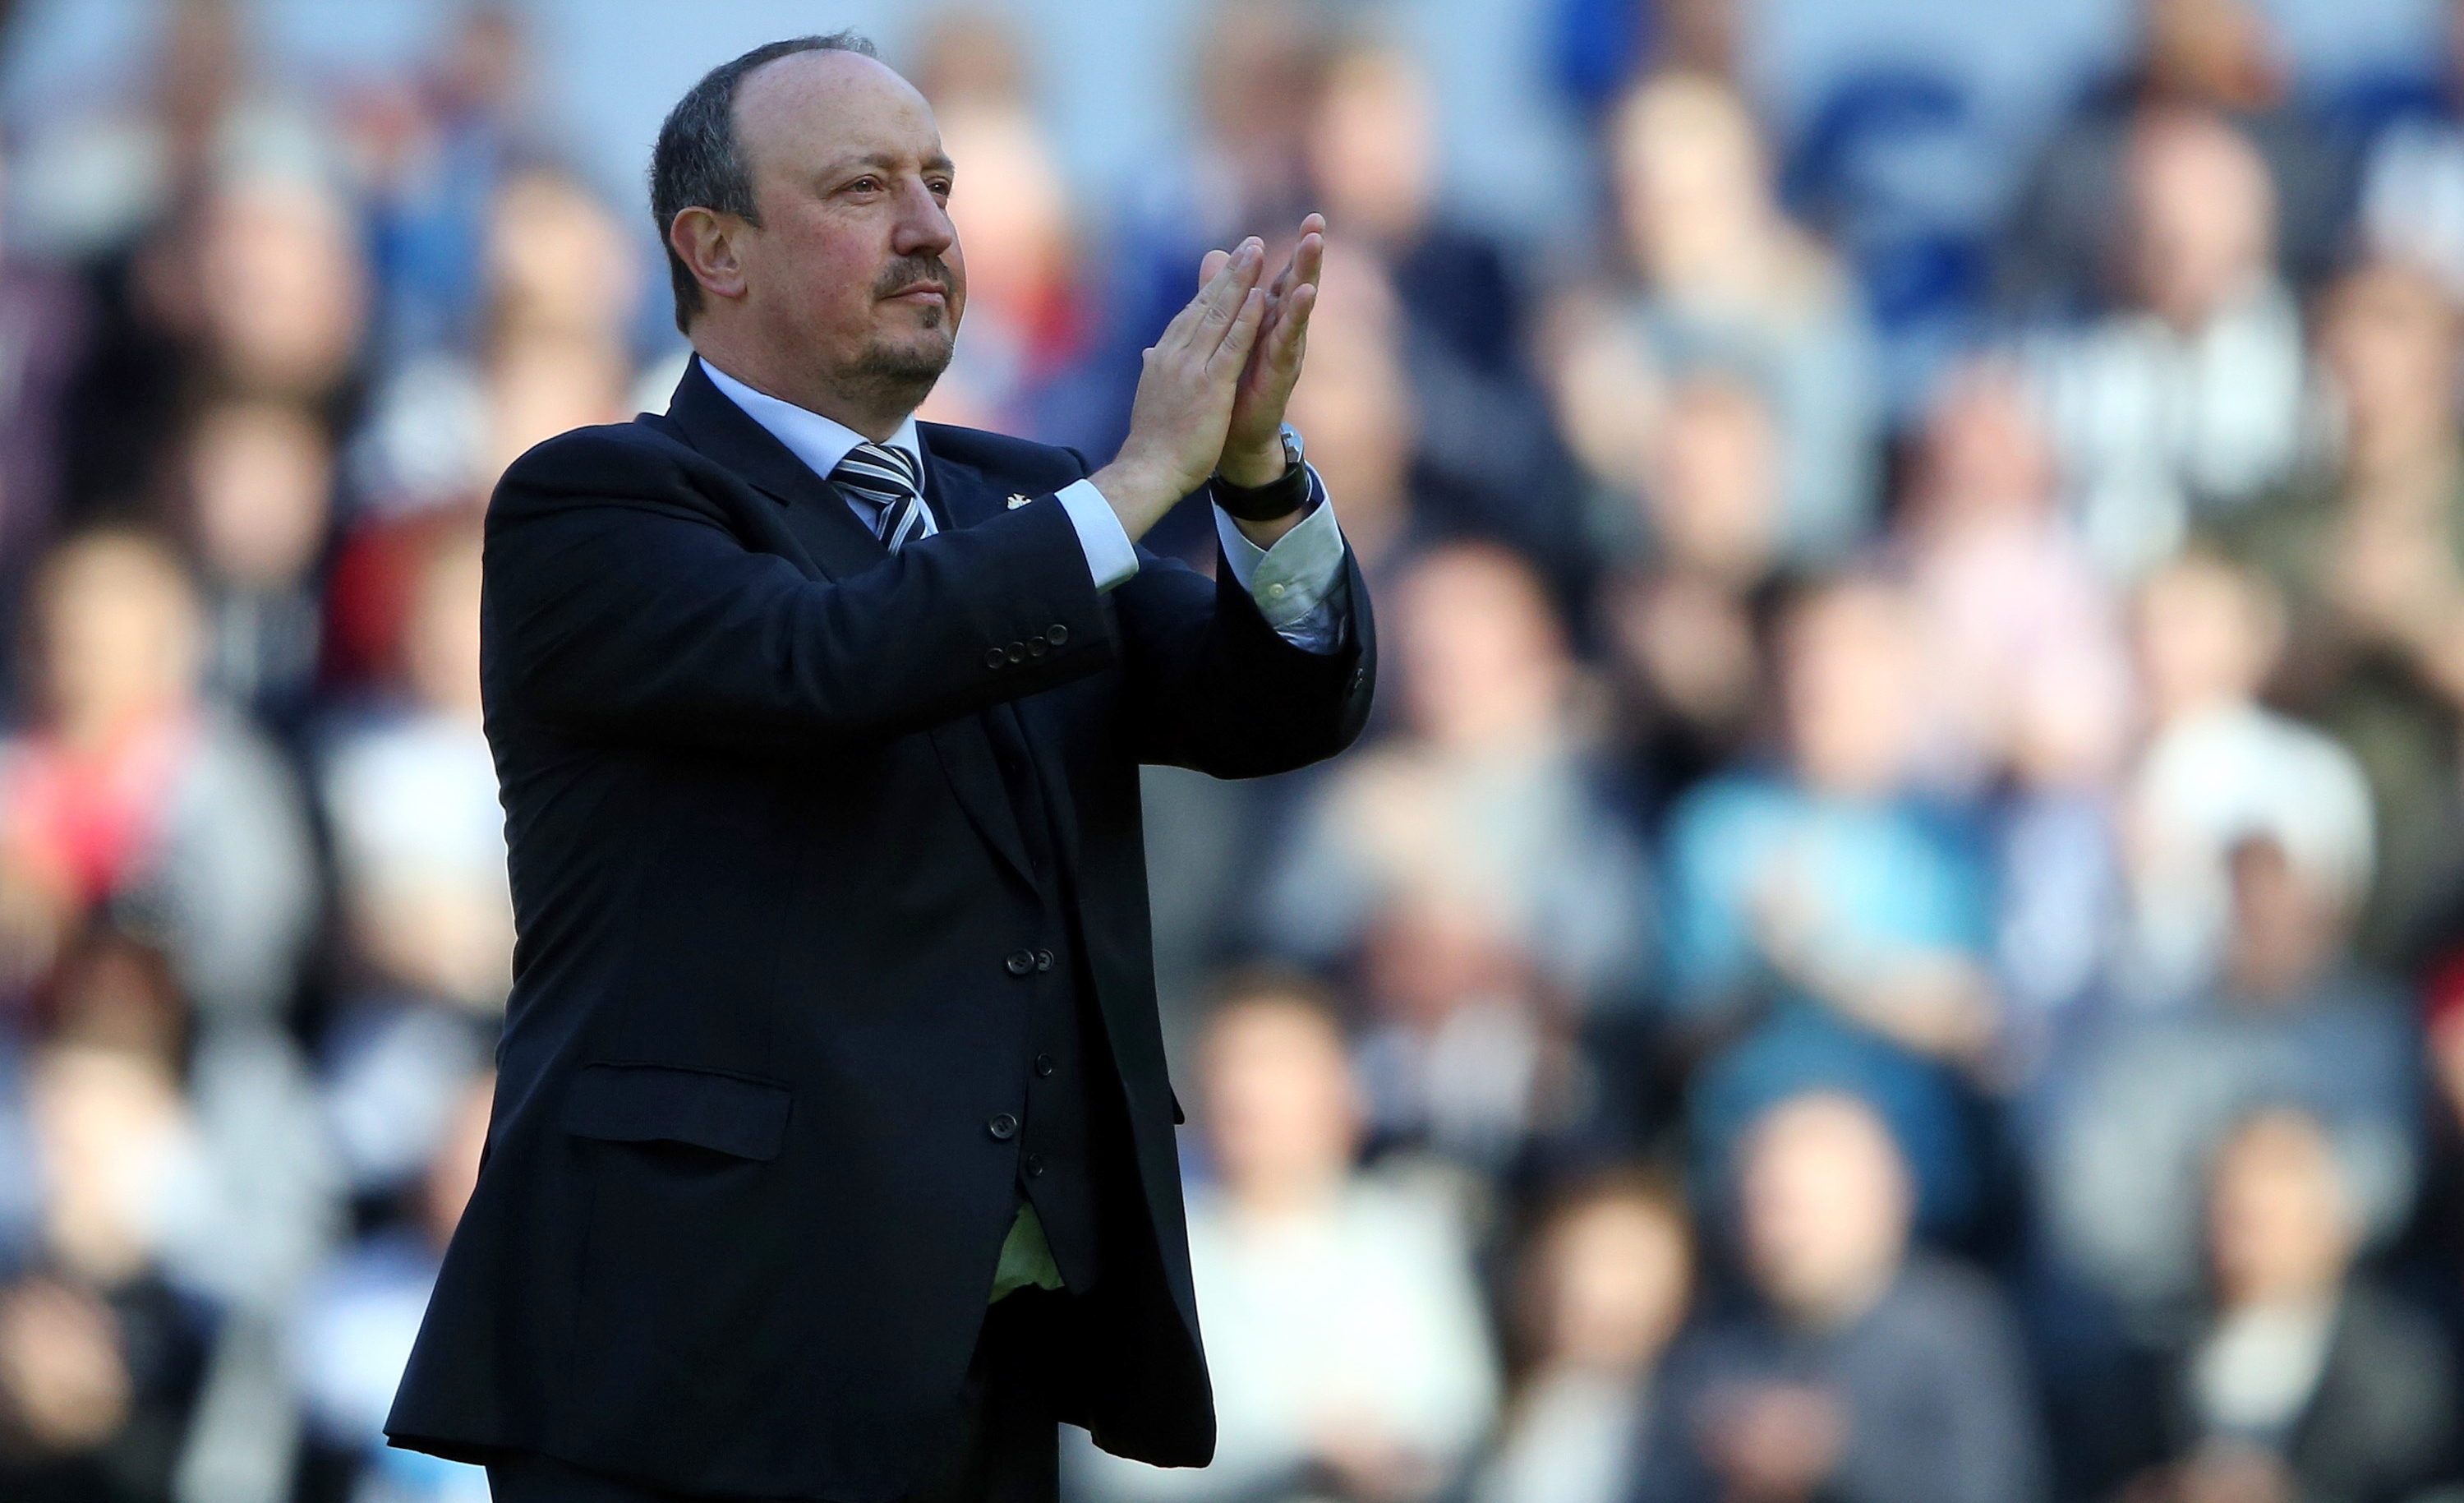 Rafael Benitez, Newcastle United